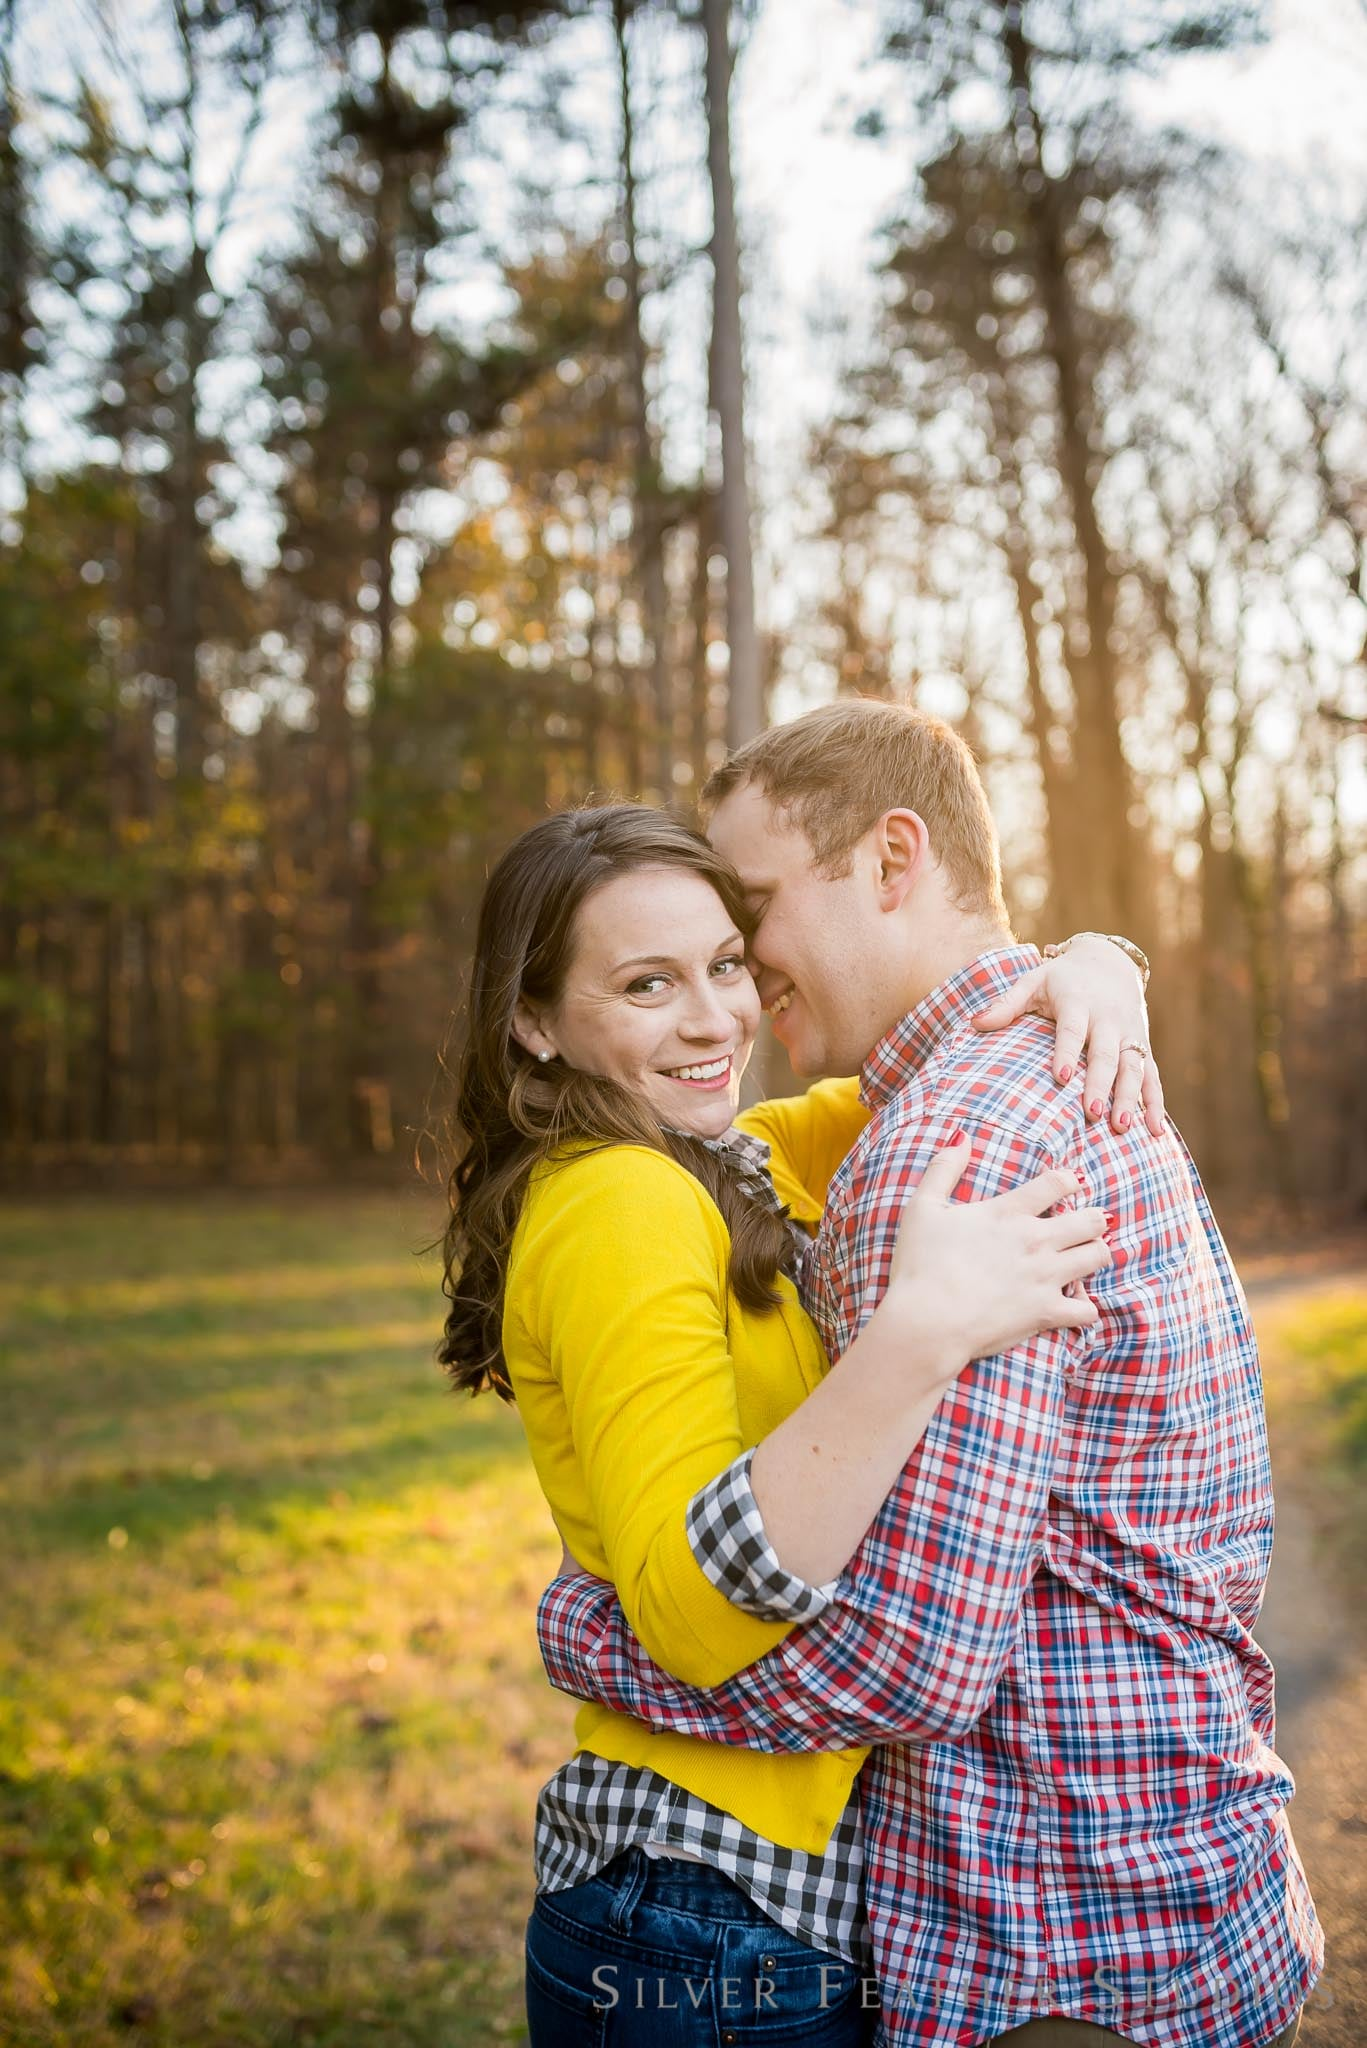 plaid and yellow outfits for this fall engagement session in greensboro. images by silver feather studios, burlington nc wedding photographer